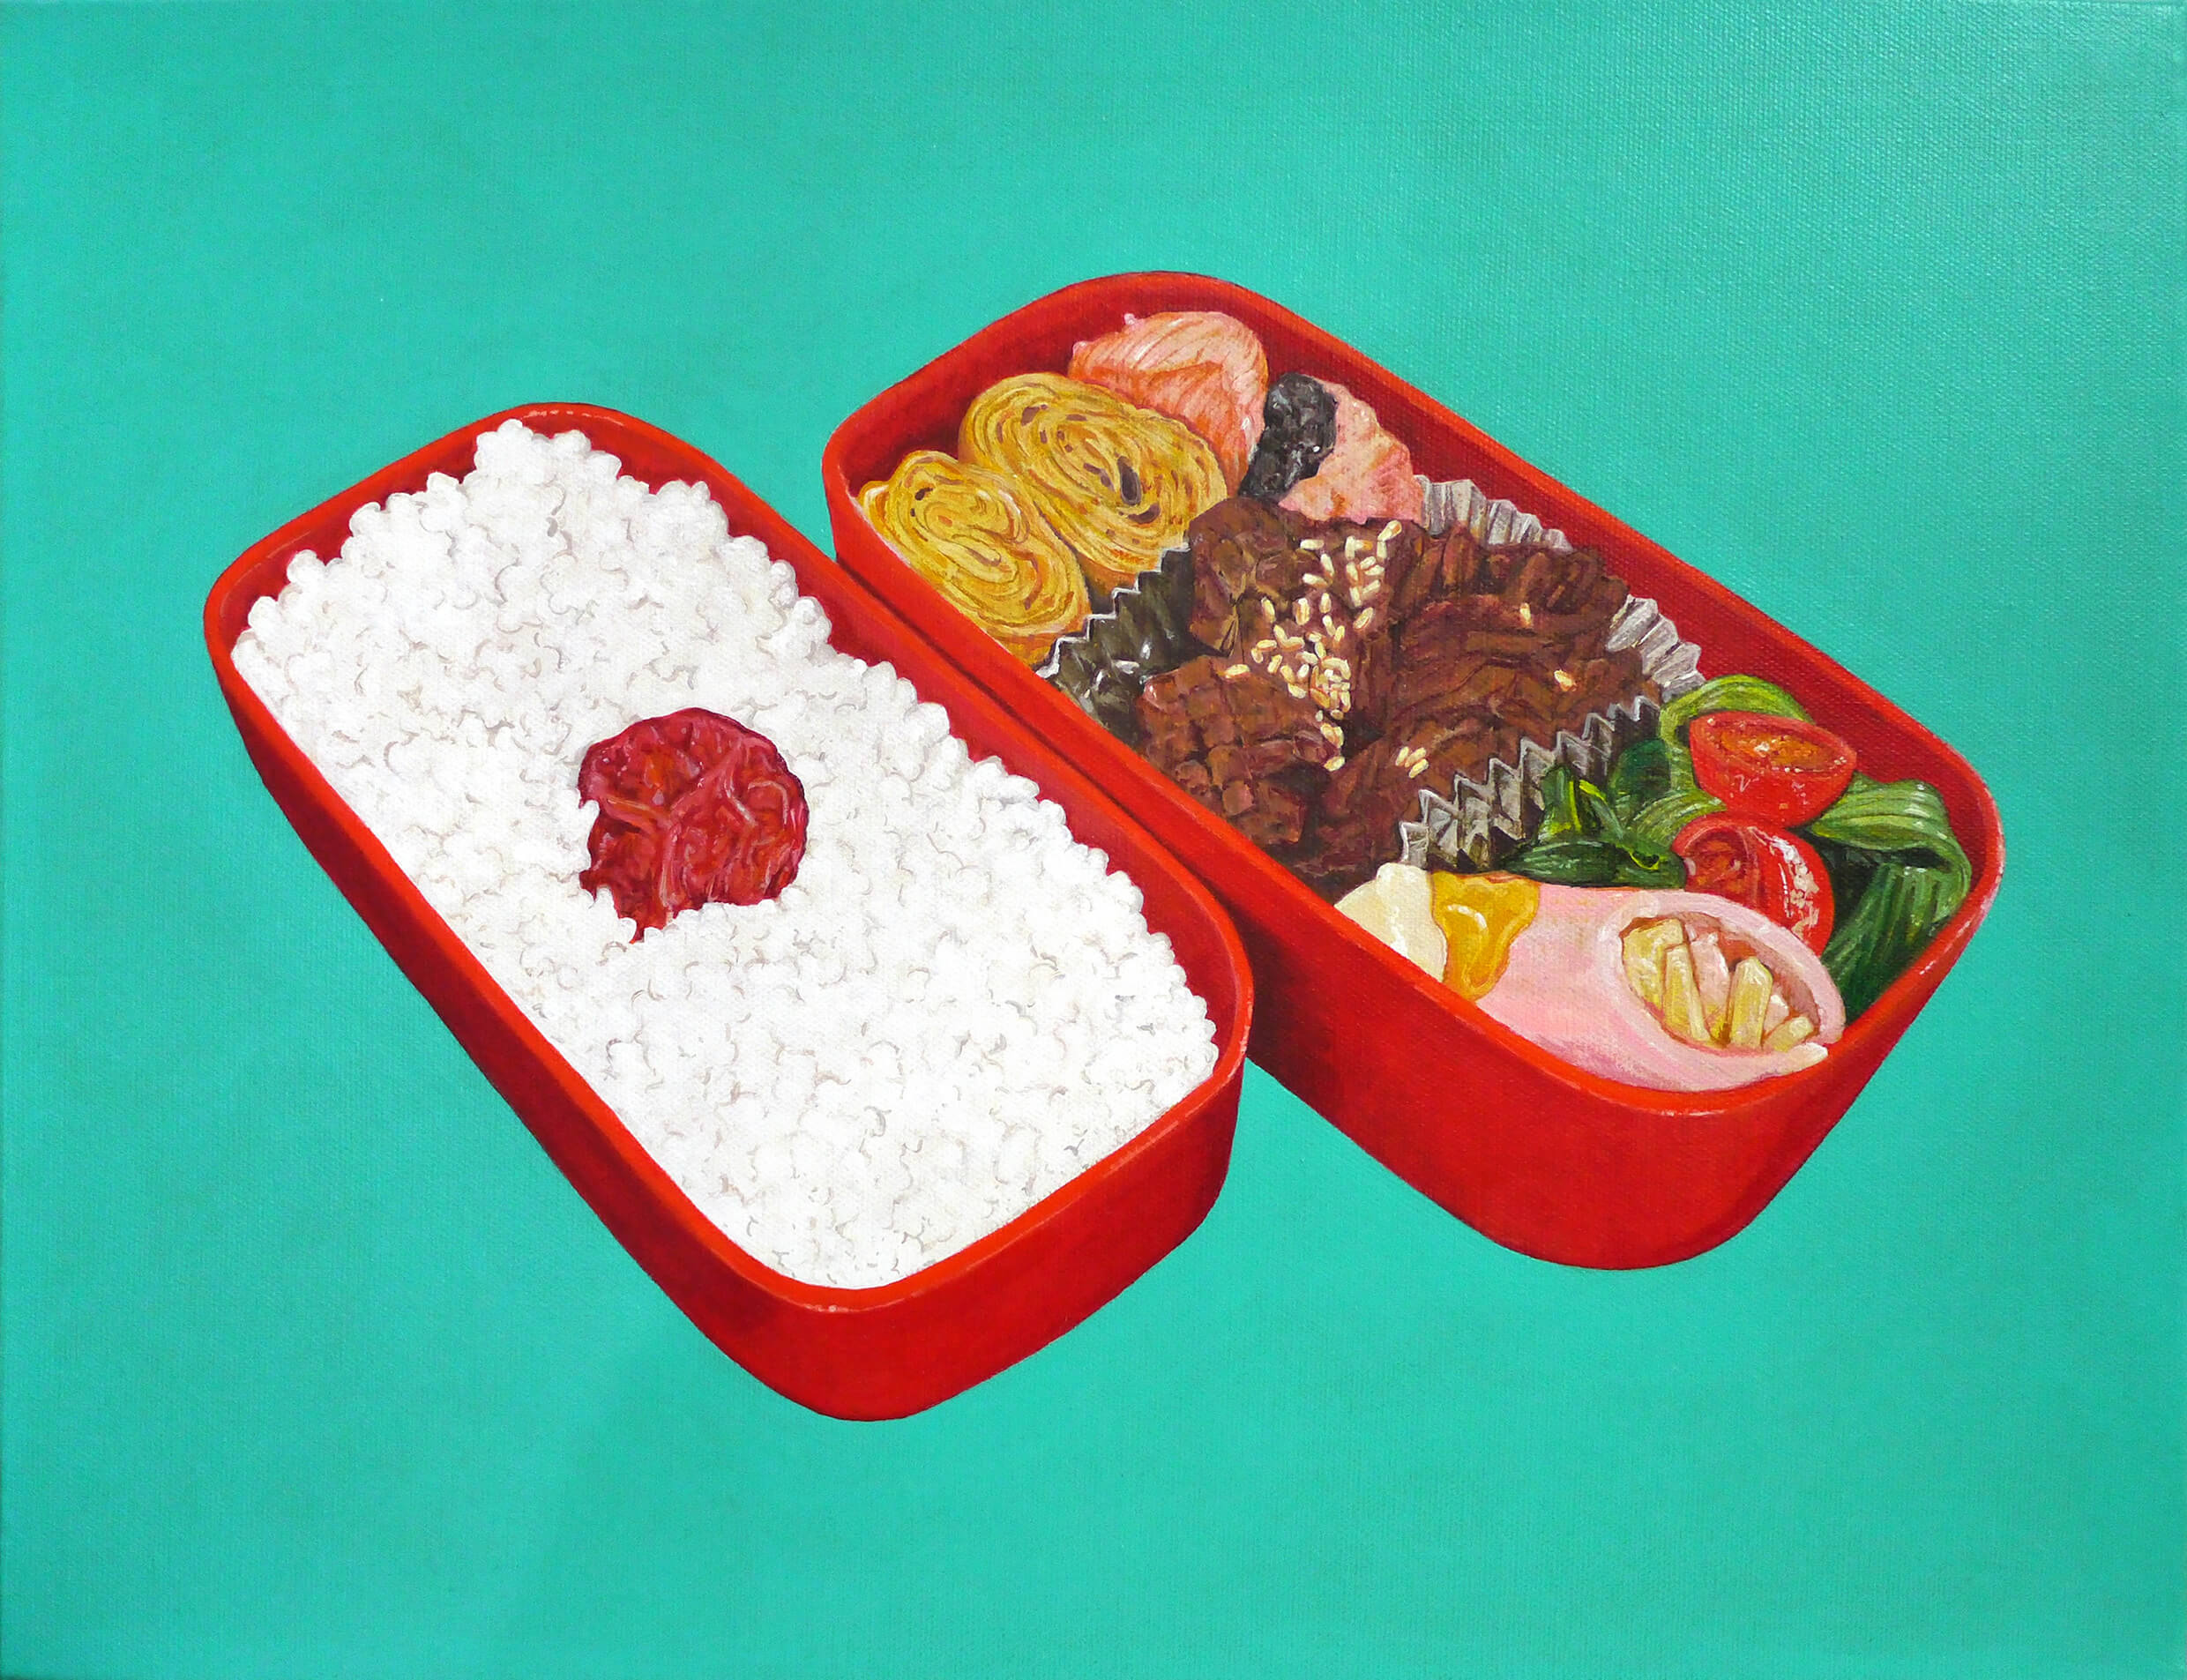 BENTO-May 27, 2018 (Calories 702 kcal, Protein 31.9 g, Total Fat 25.9 g, Total Carbohydrate 80.9 g, Sodium 10.1g / Ingredients; Rice, Japanese-style rolled omelette, Salted salmon, Eggplant and fried konjac, Pak choy, Mini tomato, Pickled plum, Ham, Cheese, Mayonnaise, Mustard, Vegetable oil, Mirin-like seasoning, Sugar, Soy sauce, Sesame)